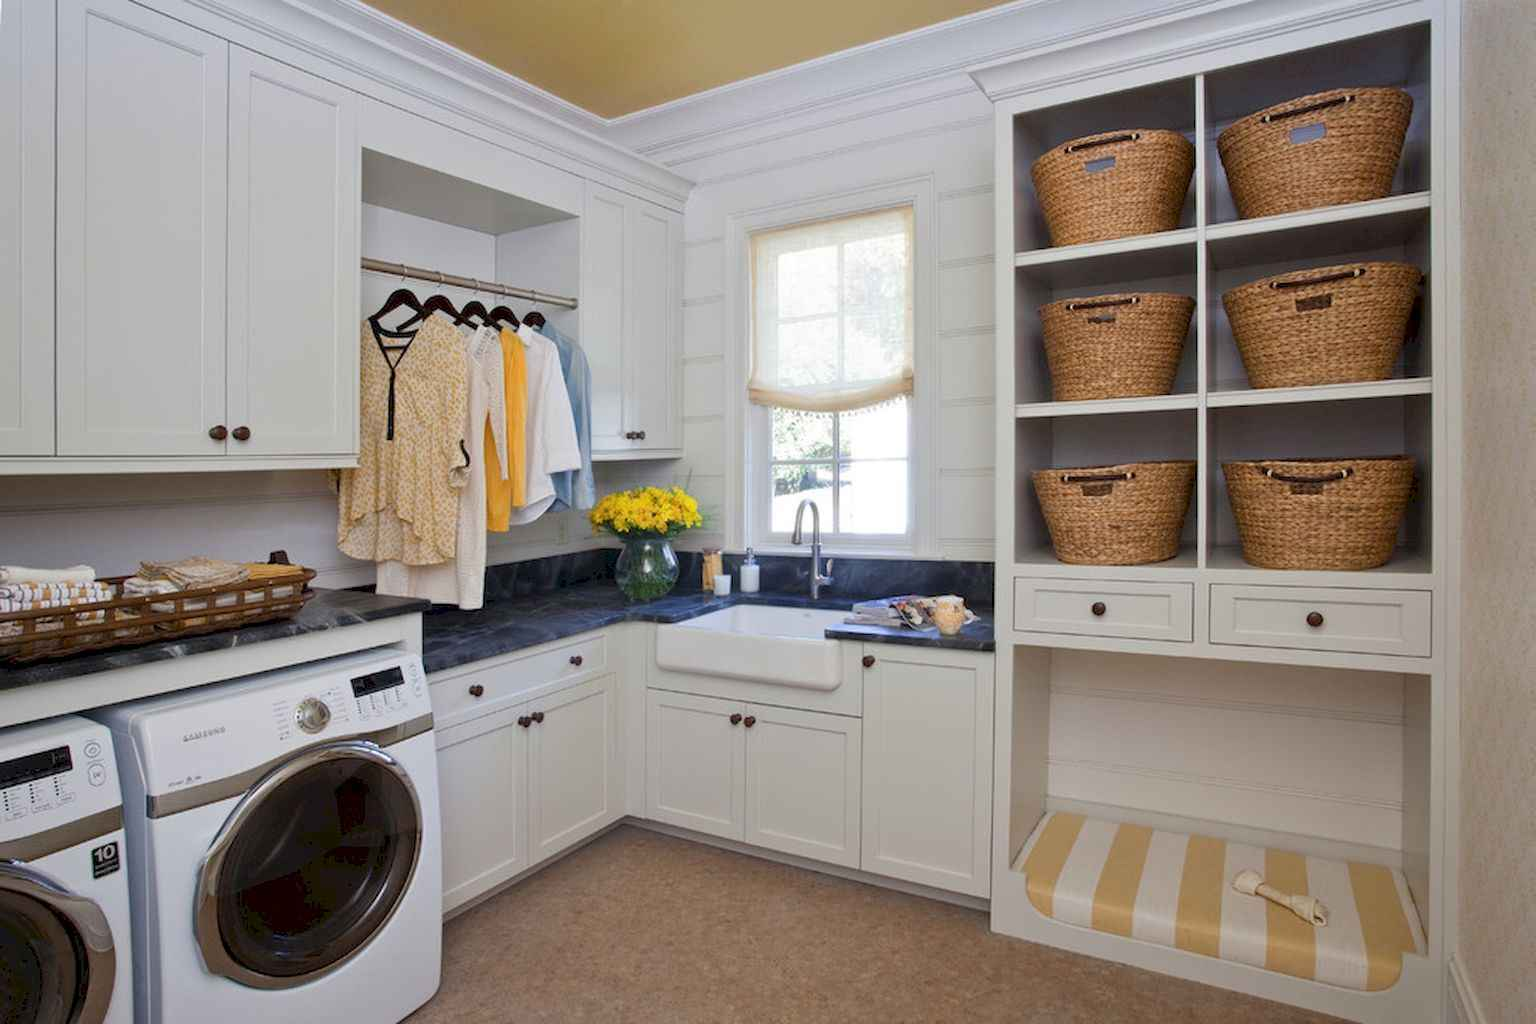 45 Rustic Farmhouse Laundry Room Design Ideas and Makeover (43)